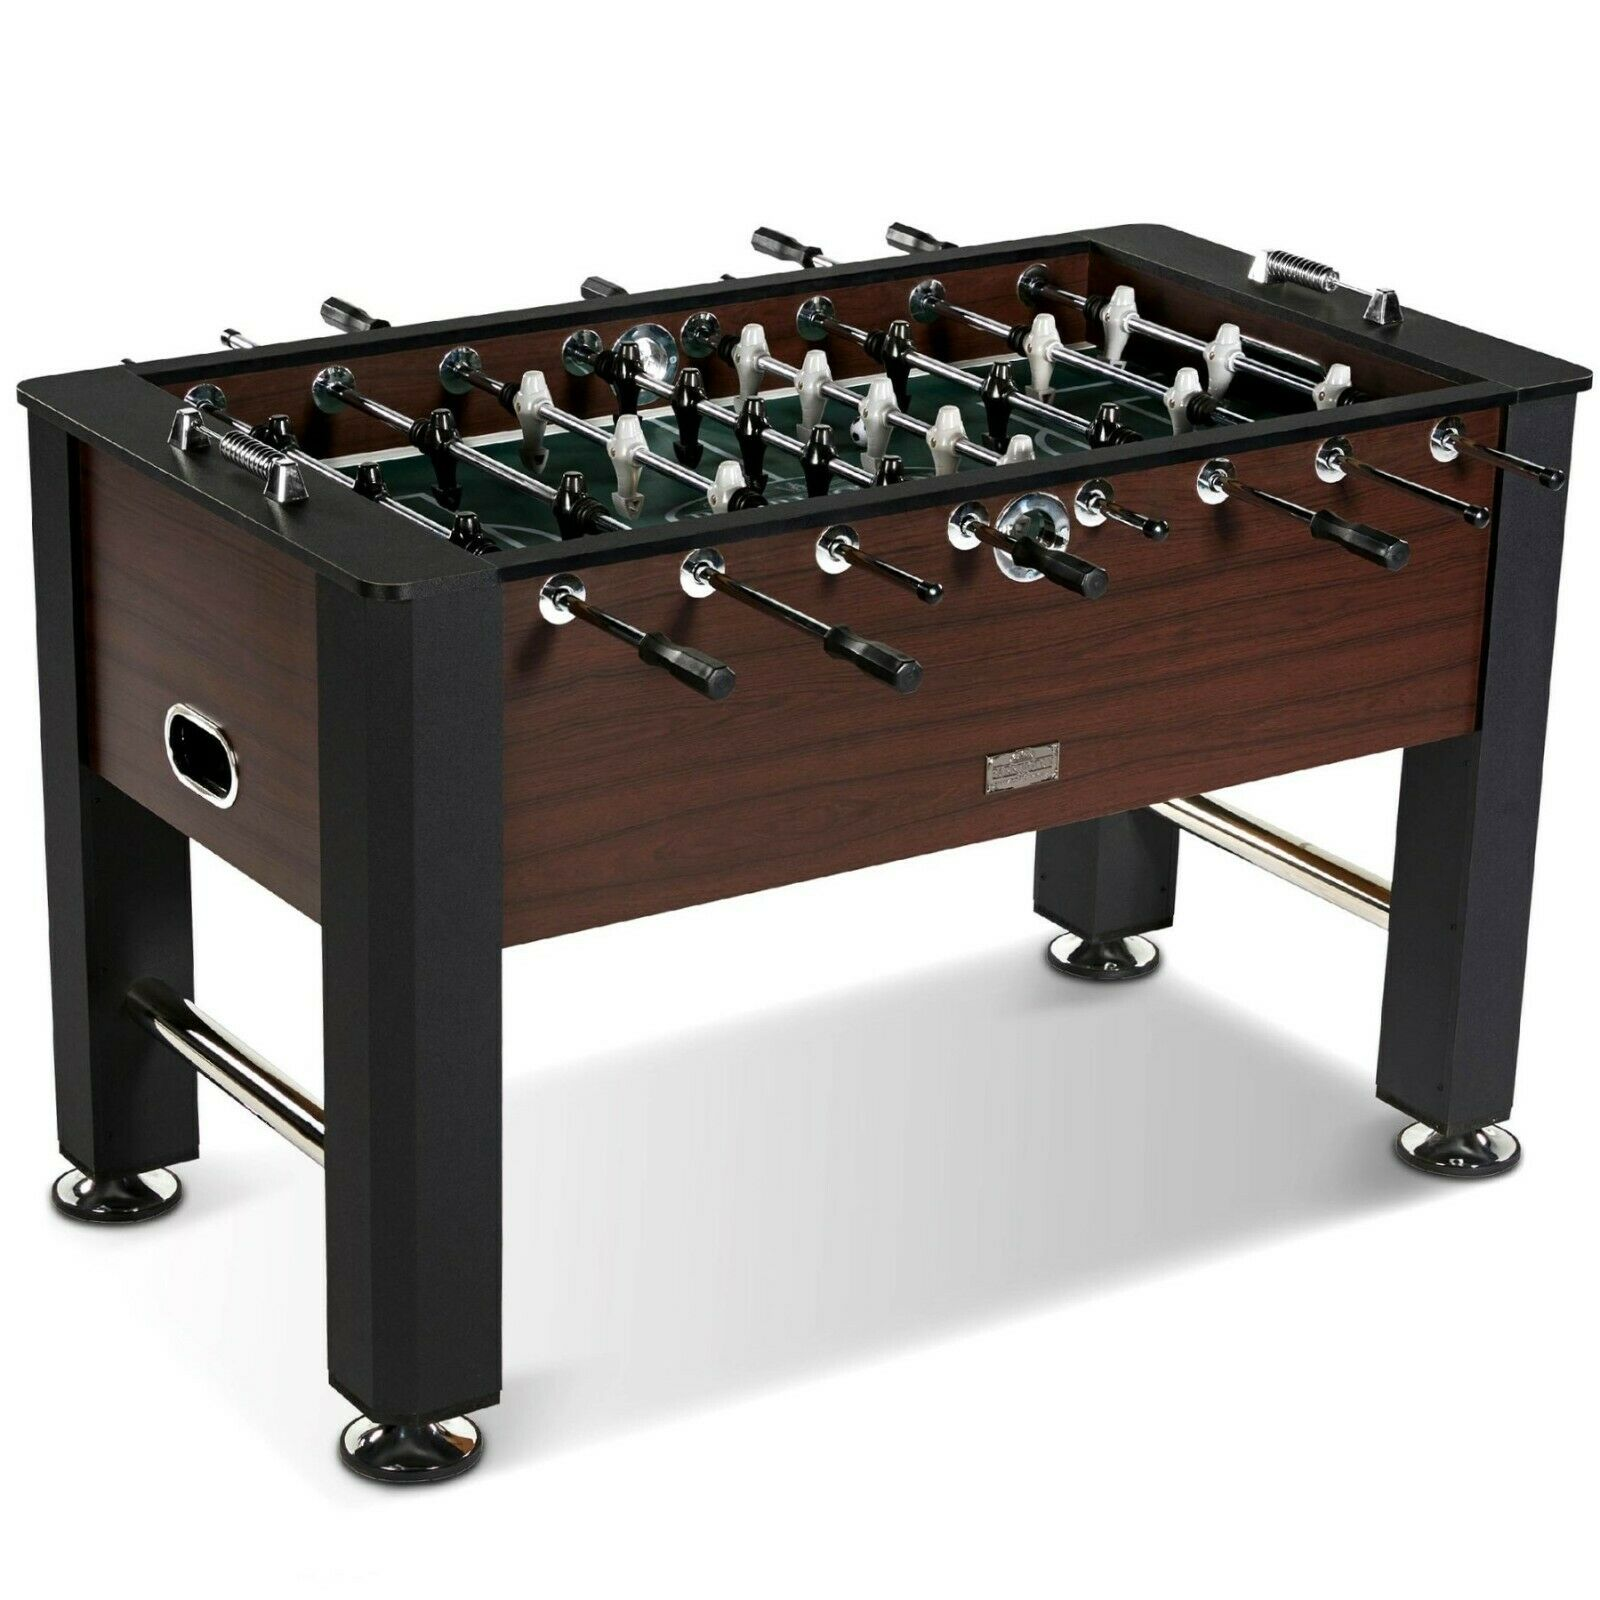 Foosball Soccer Table with 2 Balls Game Room Play Tables Leg